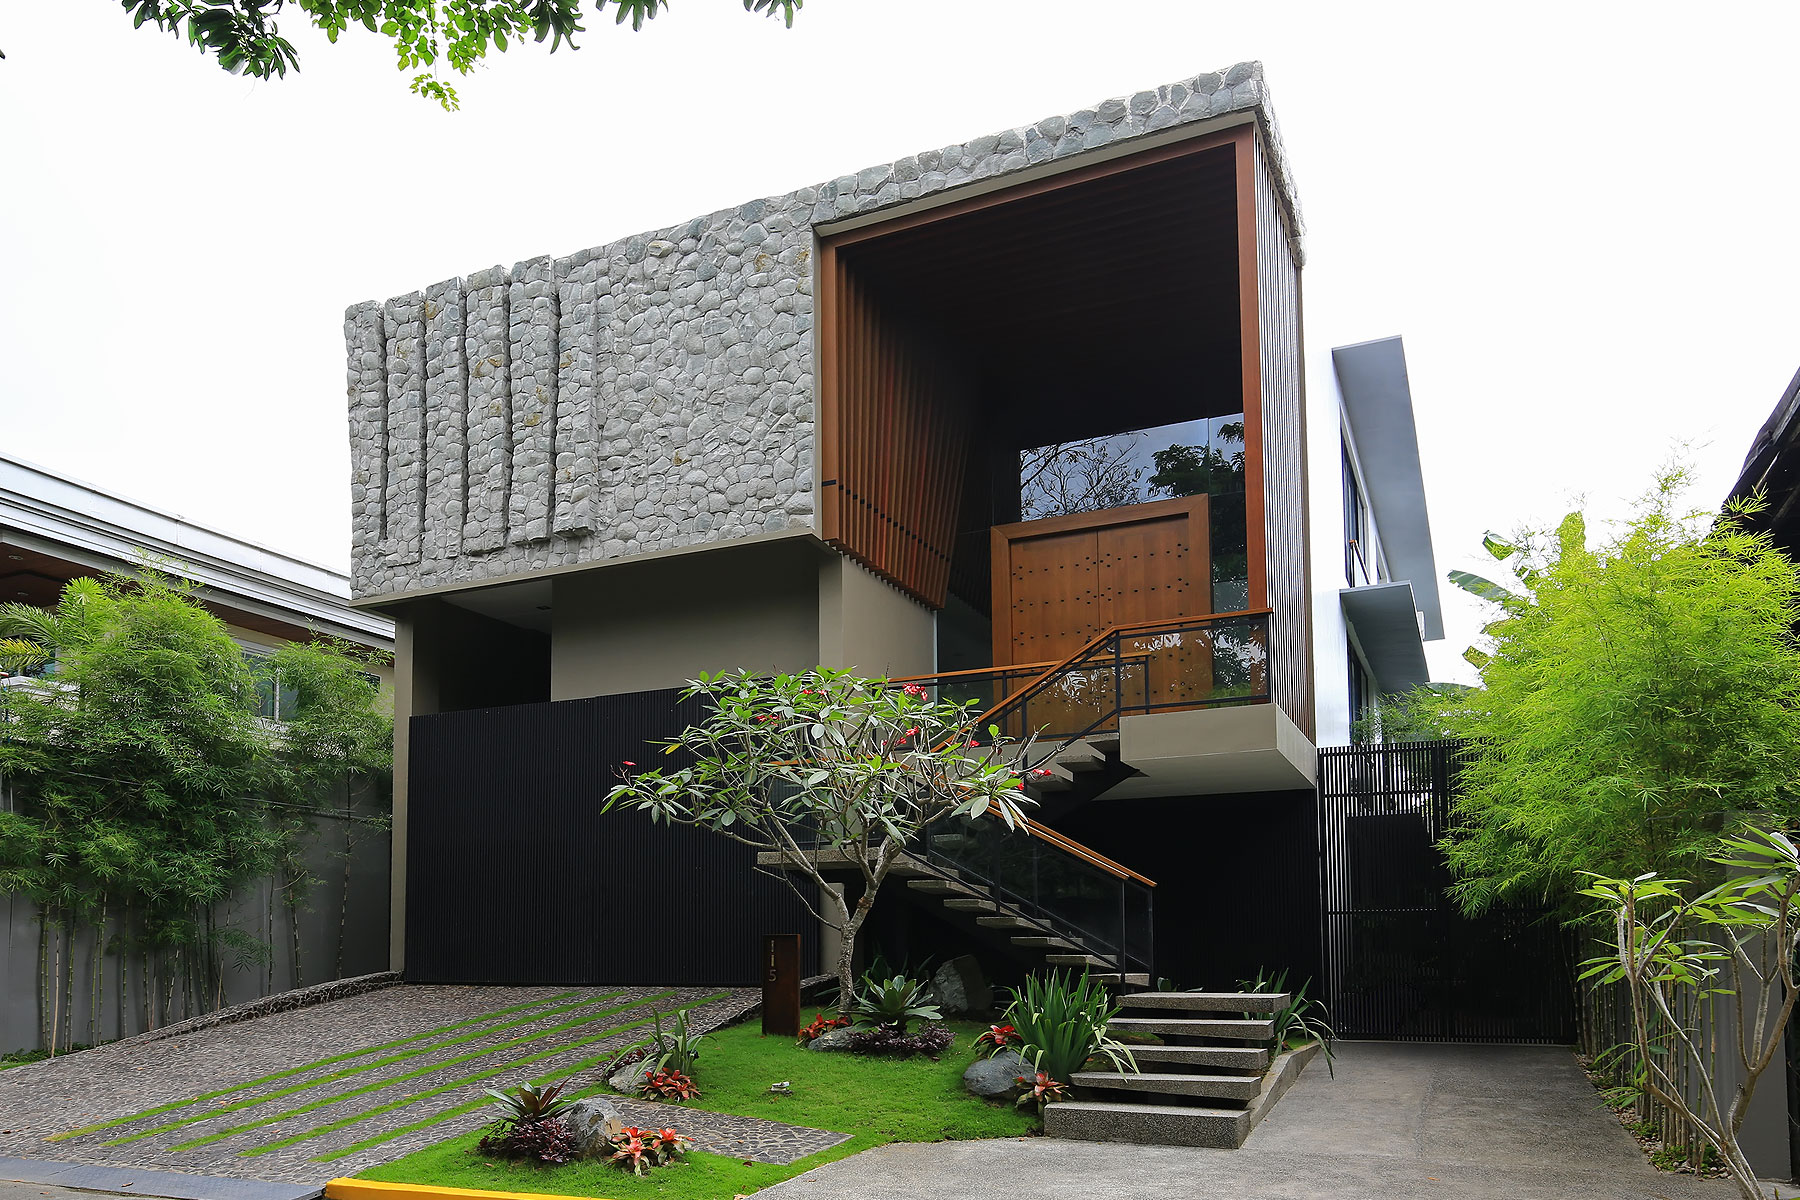 一戸建て のために 売買 アット Artistic Modern Magallanes Village Property 115 Victoria St. Magallanes Village Makati, Luzon 1321 フィリピン